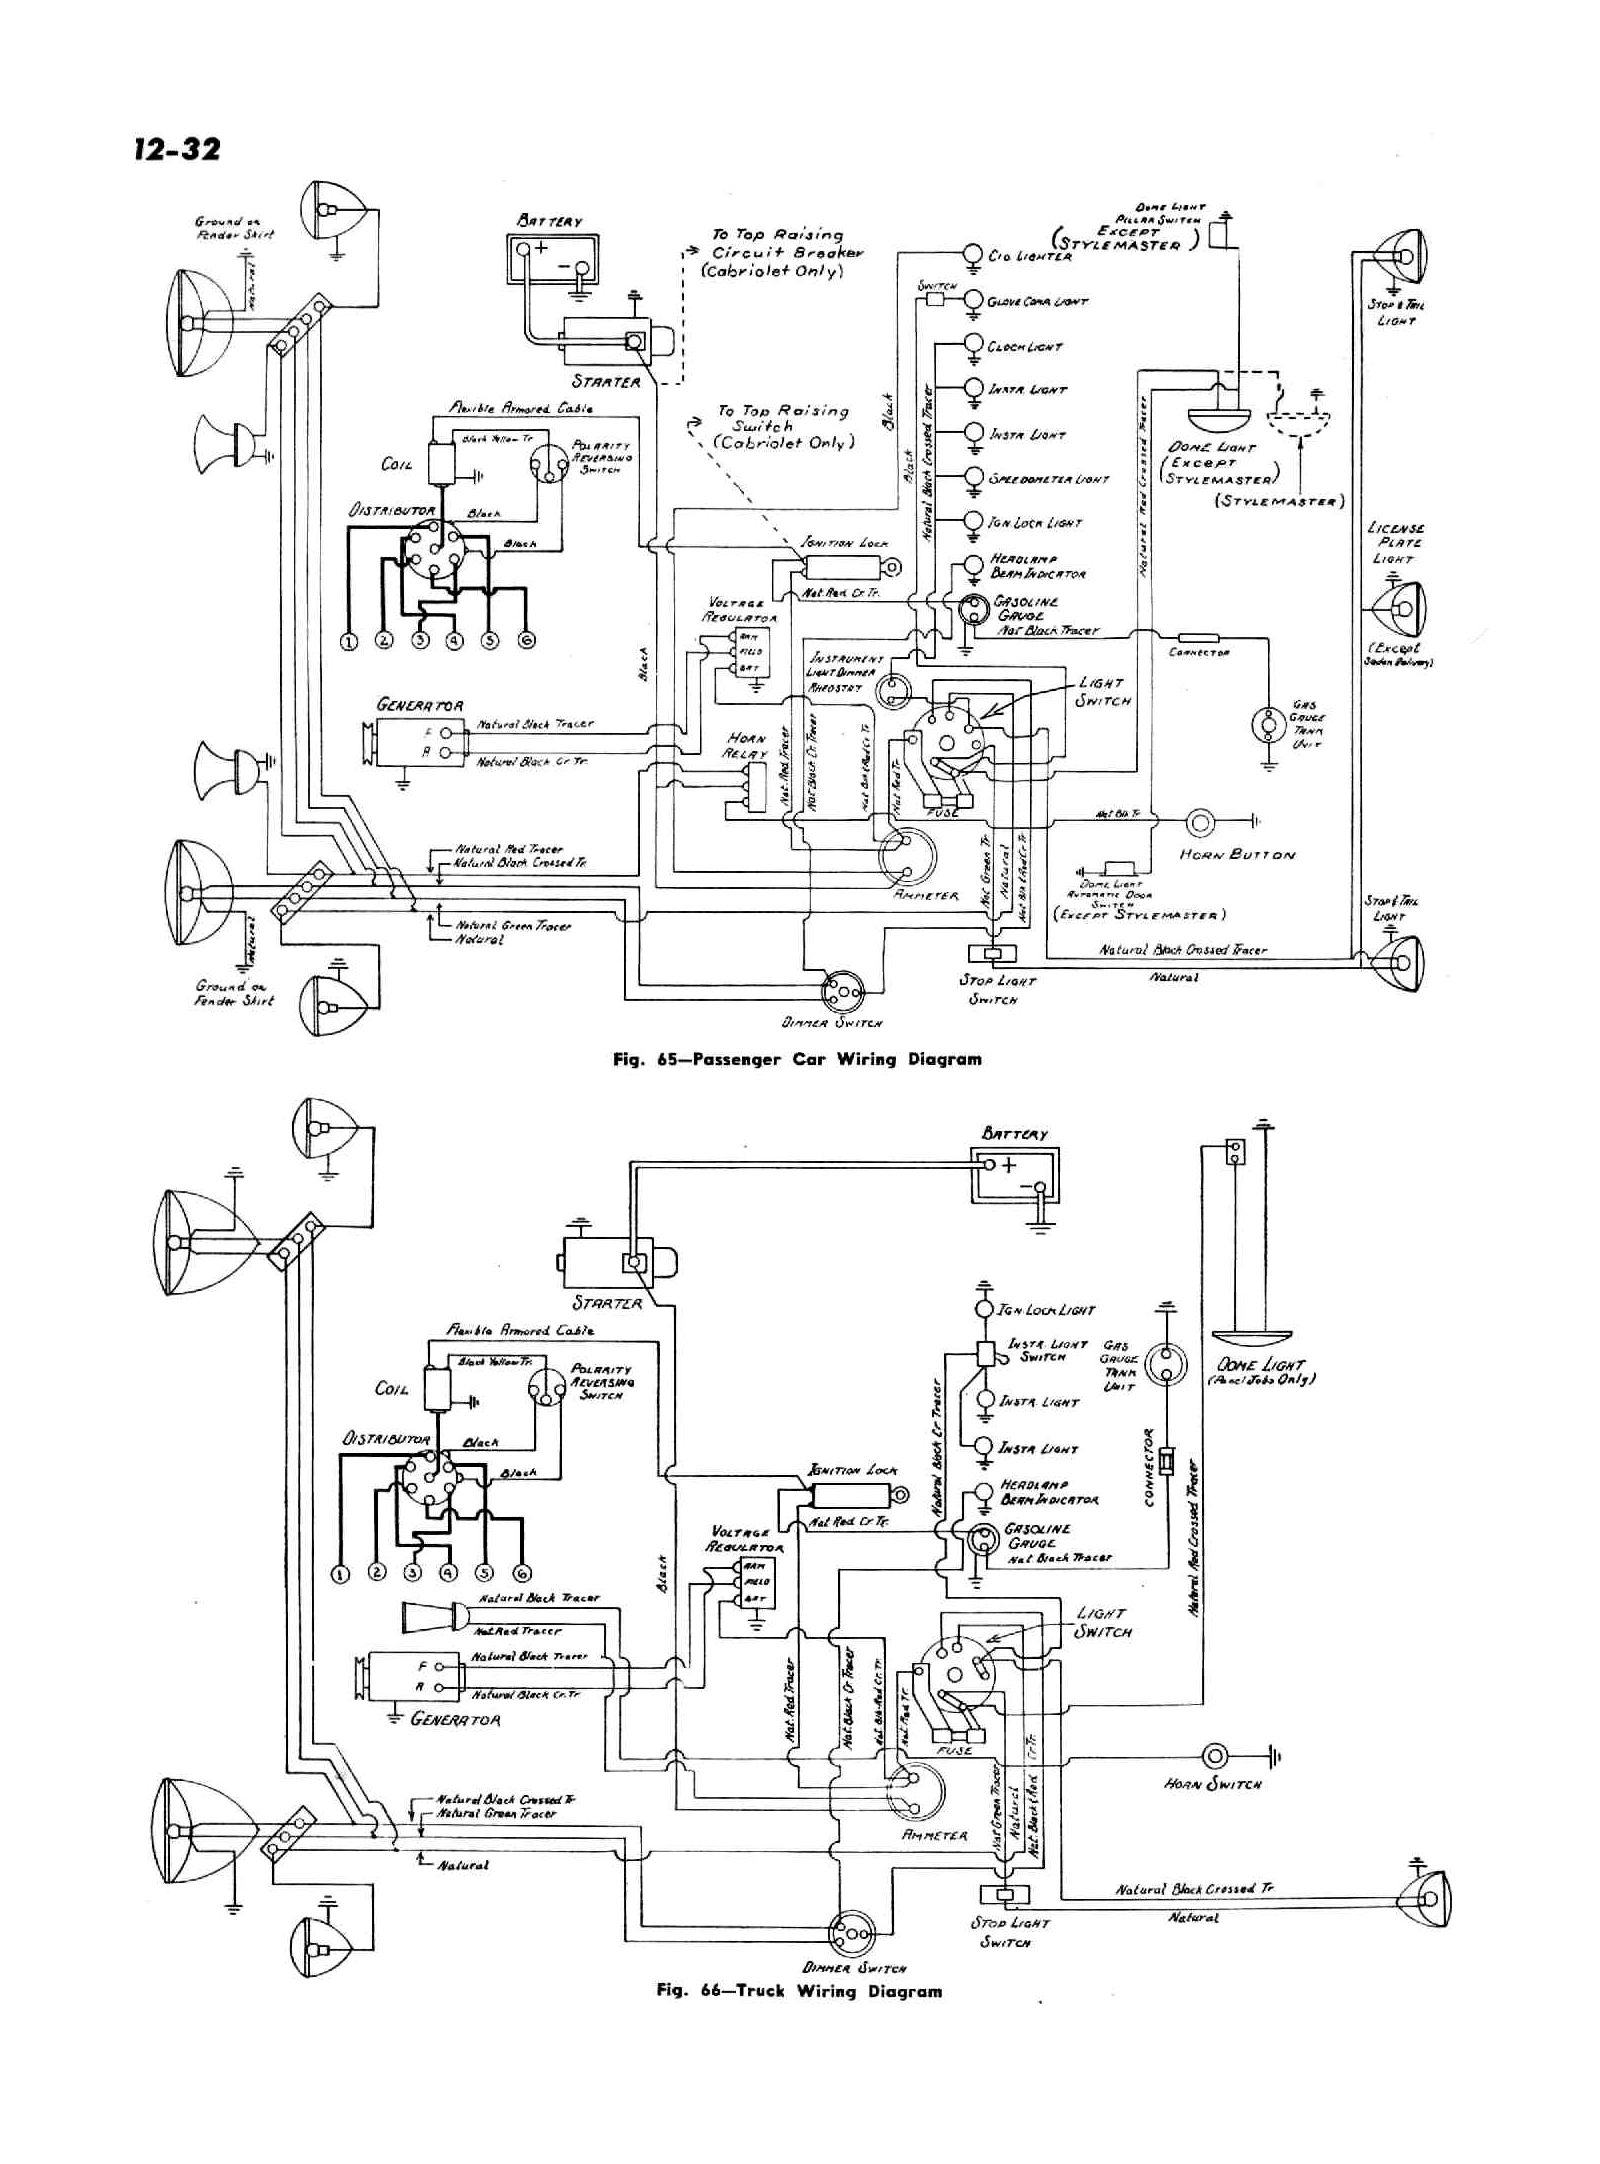 1486 International Wiring Diagram Libraries 1086 Ih Diagrams Nice Place To Get U20221066 Tractor